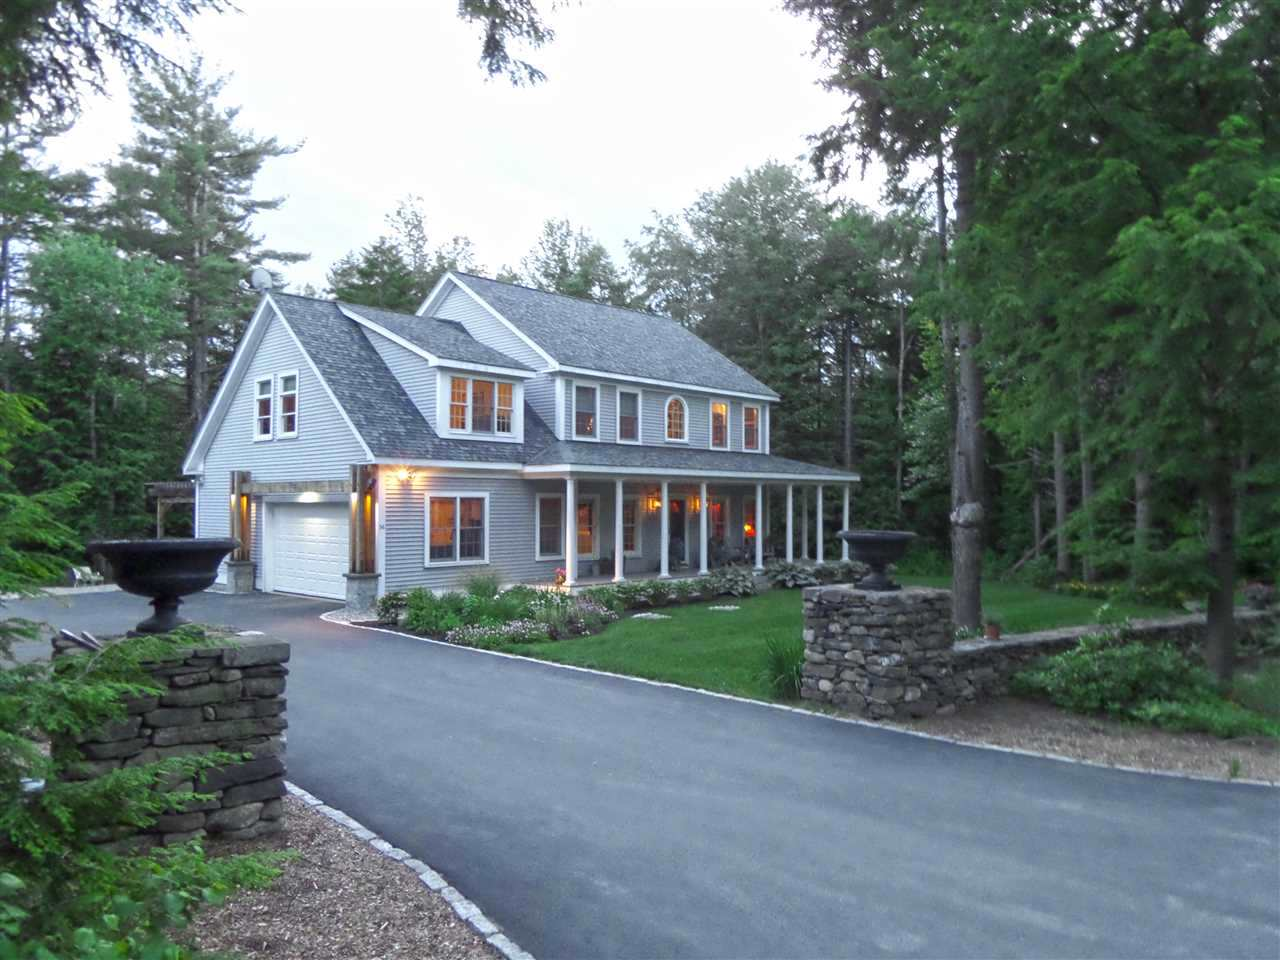 MLS 4751307: 56 Crestview Drive, Jaffrey NH